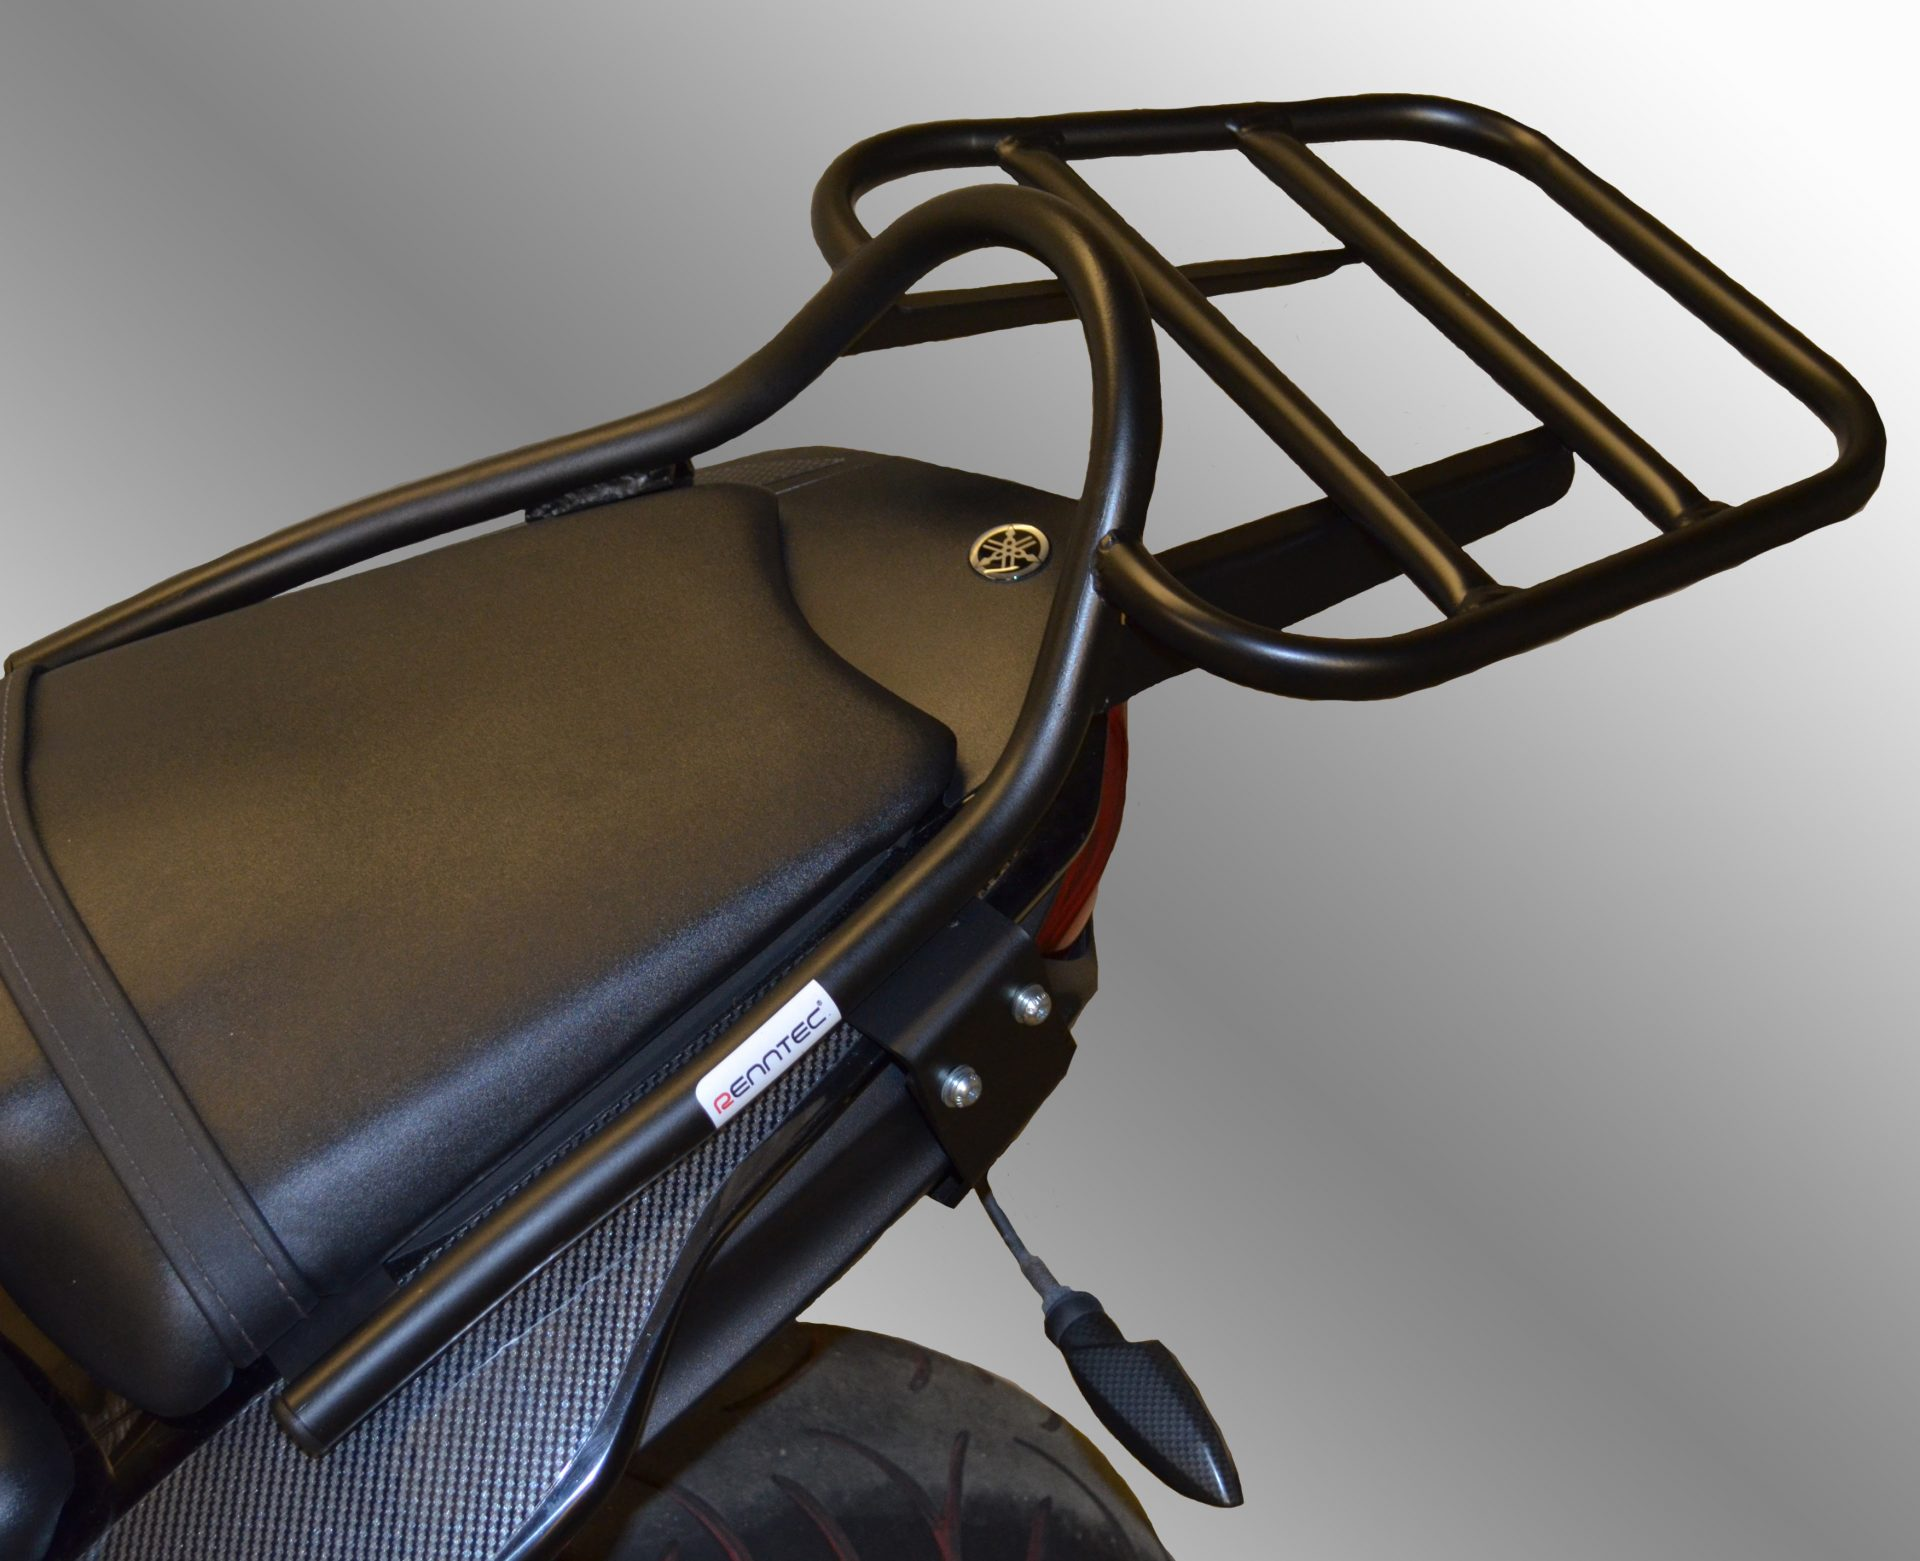 Yamaha FZ8 (2010-2014 Luggage Carrier/Top Box Rack In Black